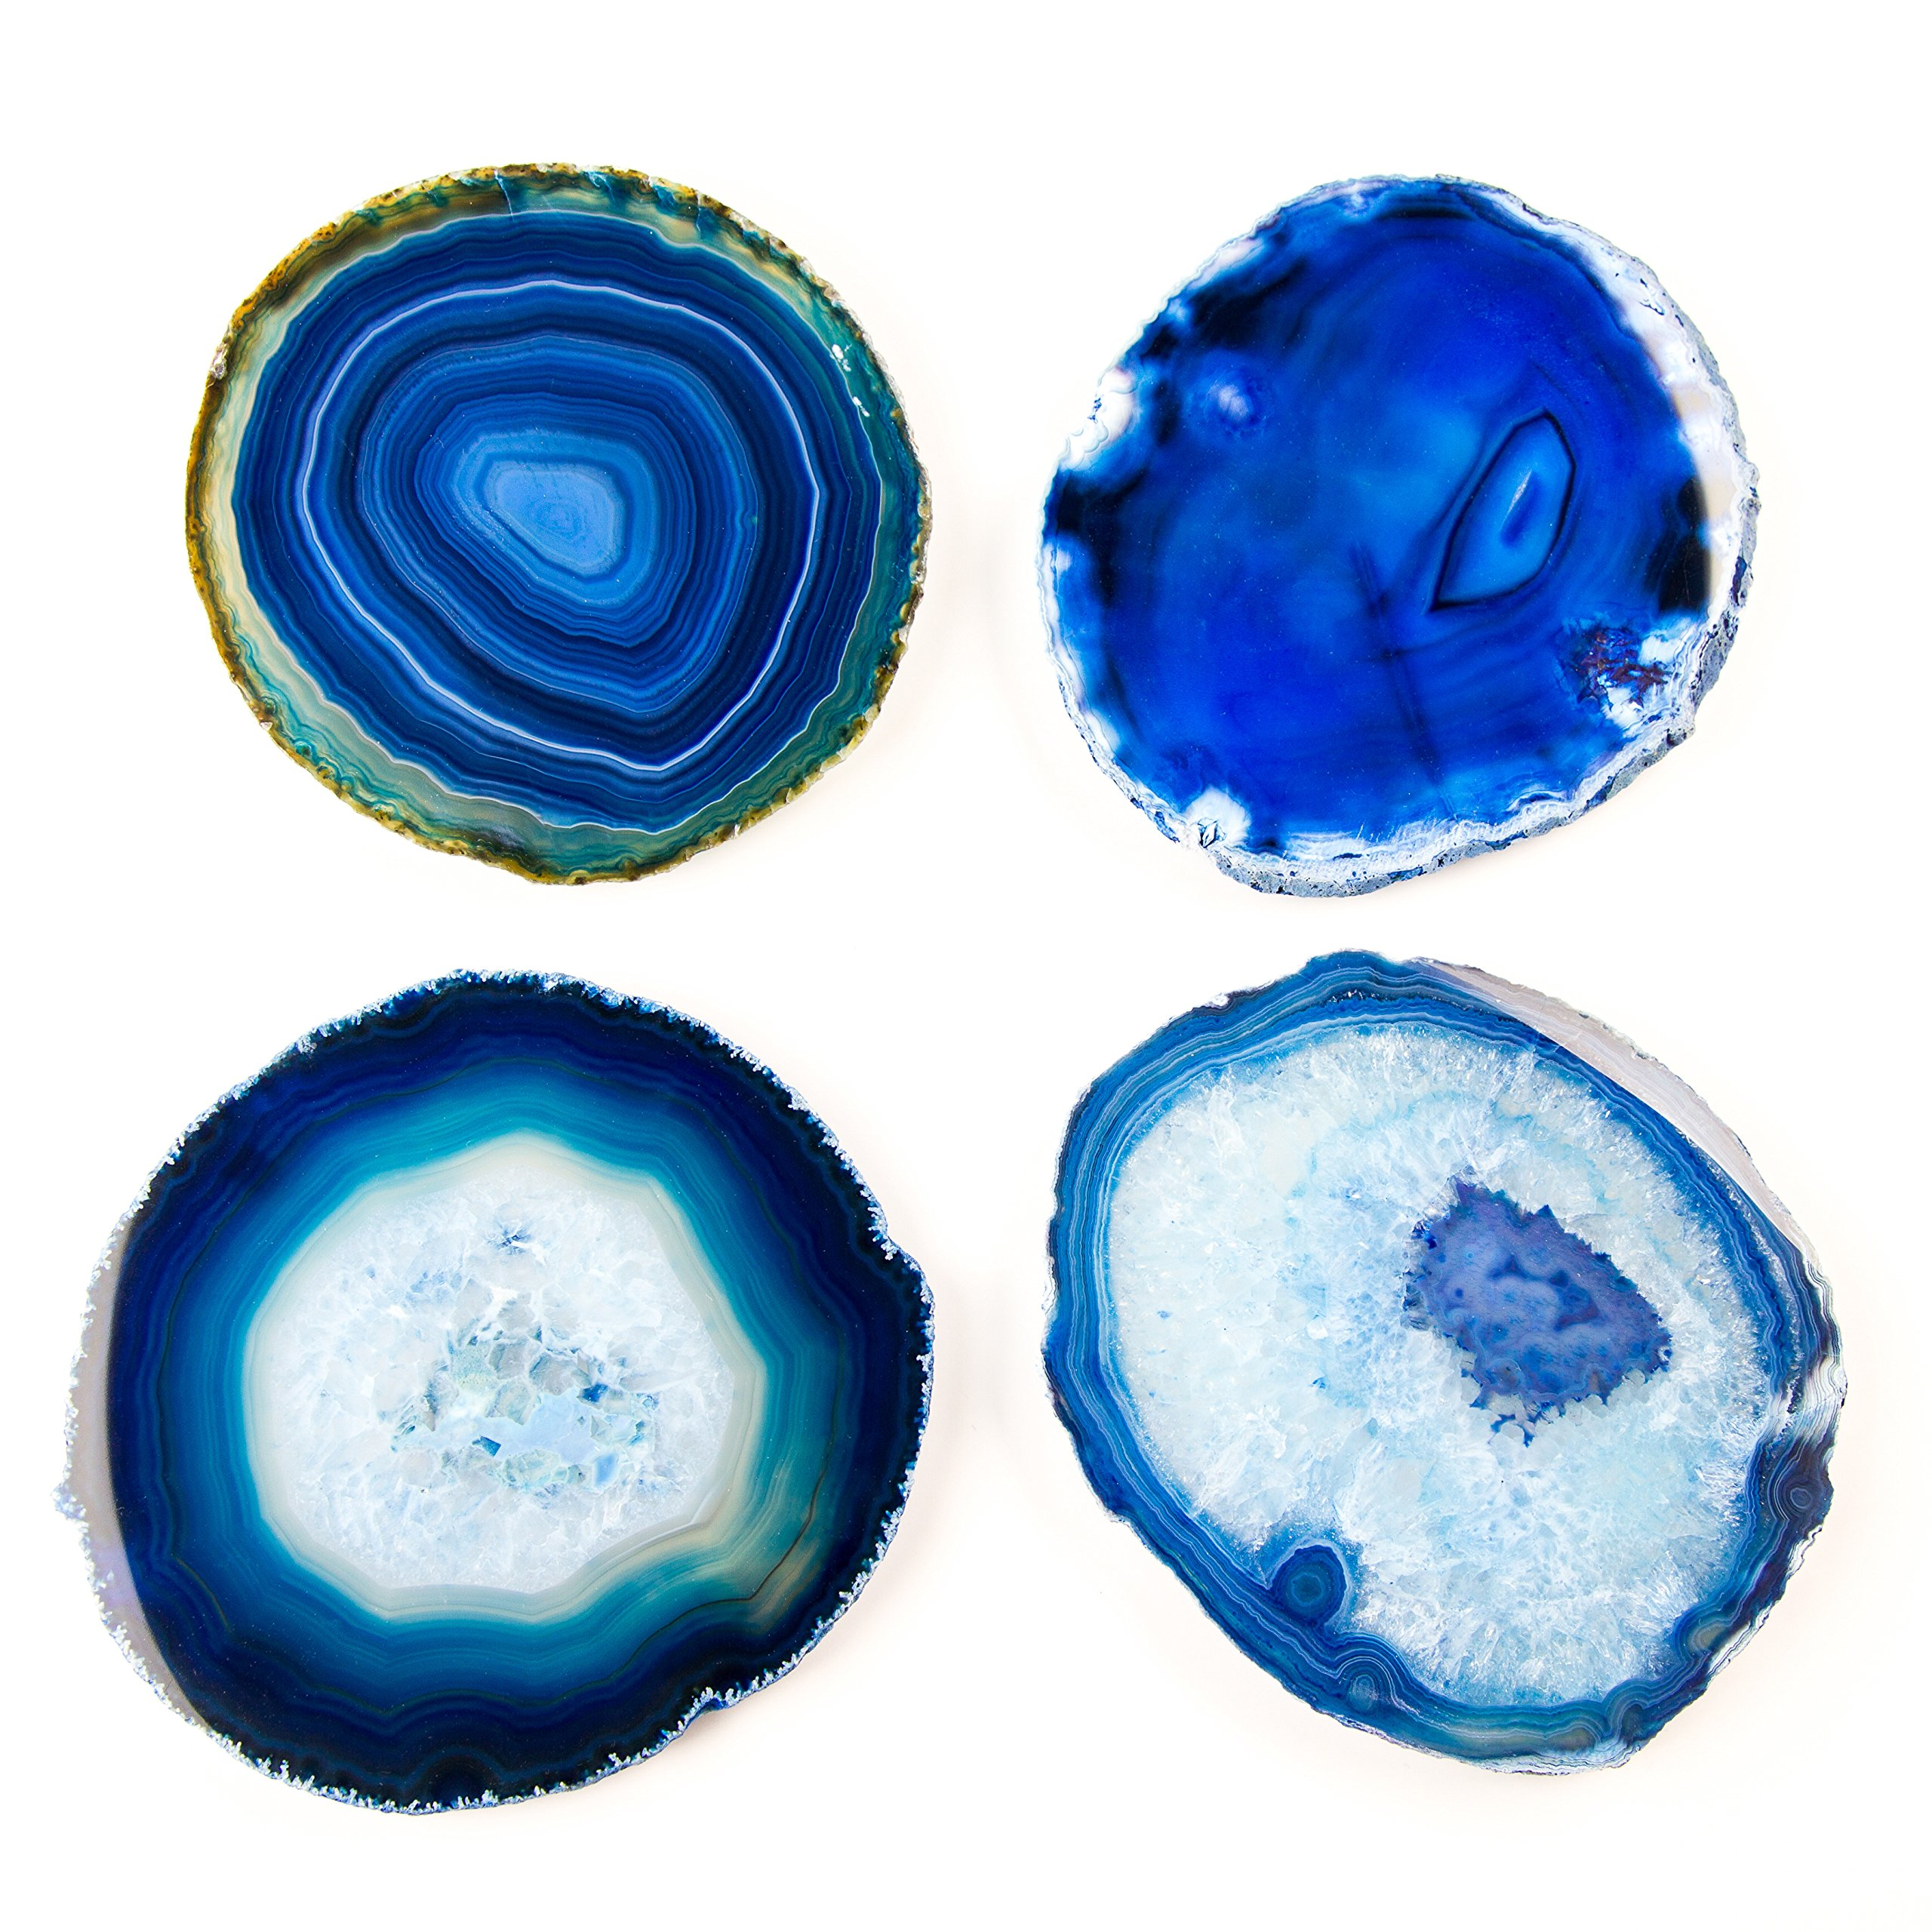 LARGE BLUE AGATE COASTERS Set of 4 Sliced Thick with Felt Bumper (4-5) | Authentic Handmade Brazilian coasters packaged in the USA by Babylon Agate (Image #3)